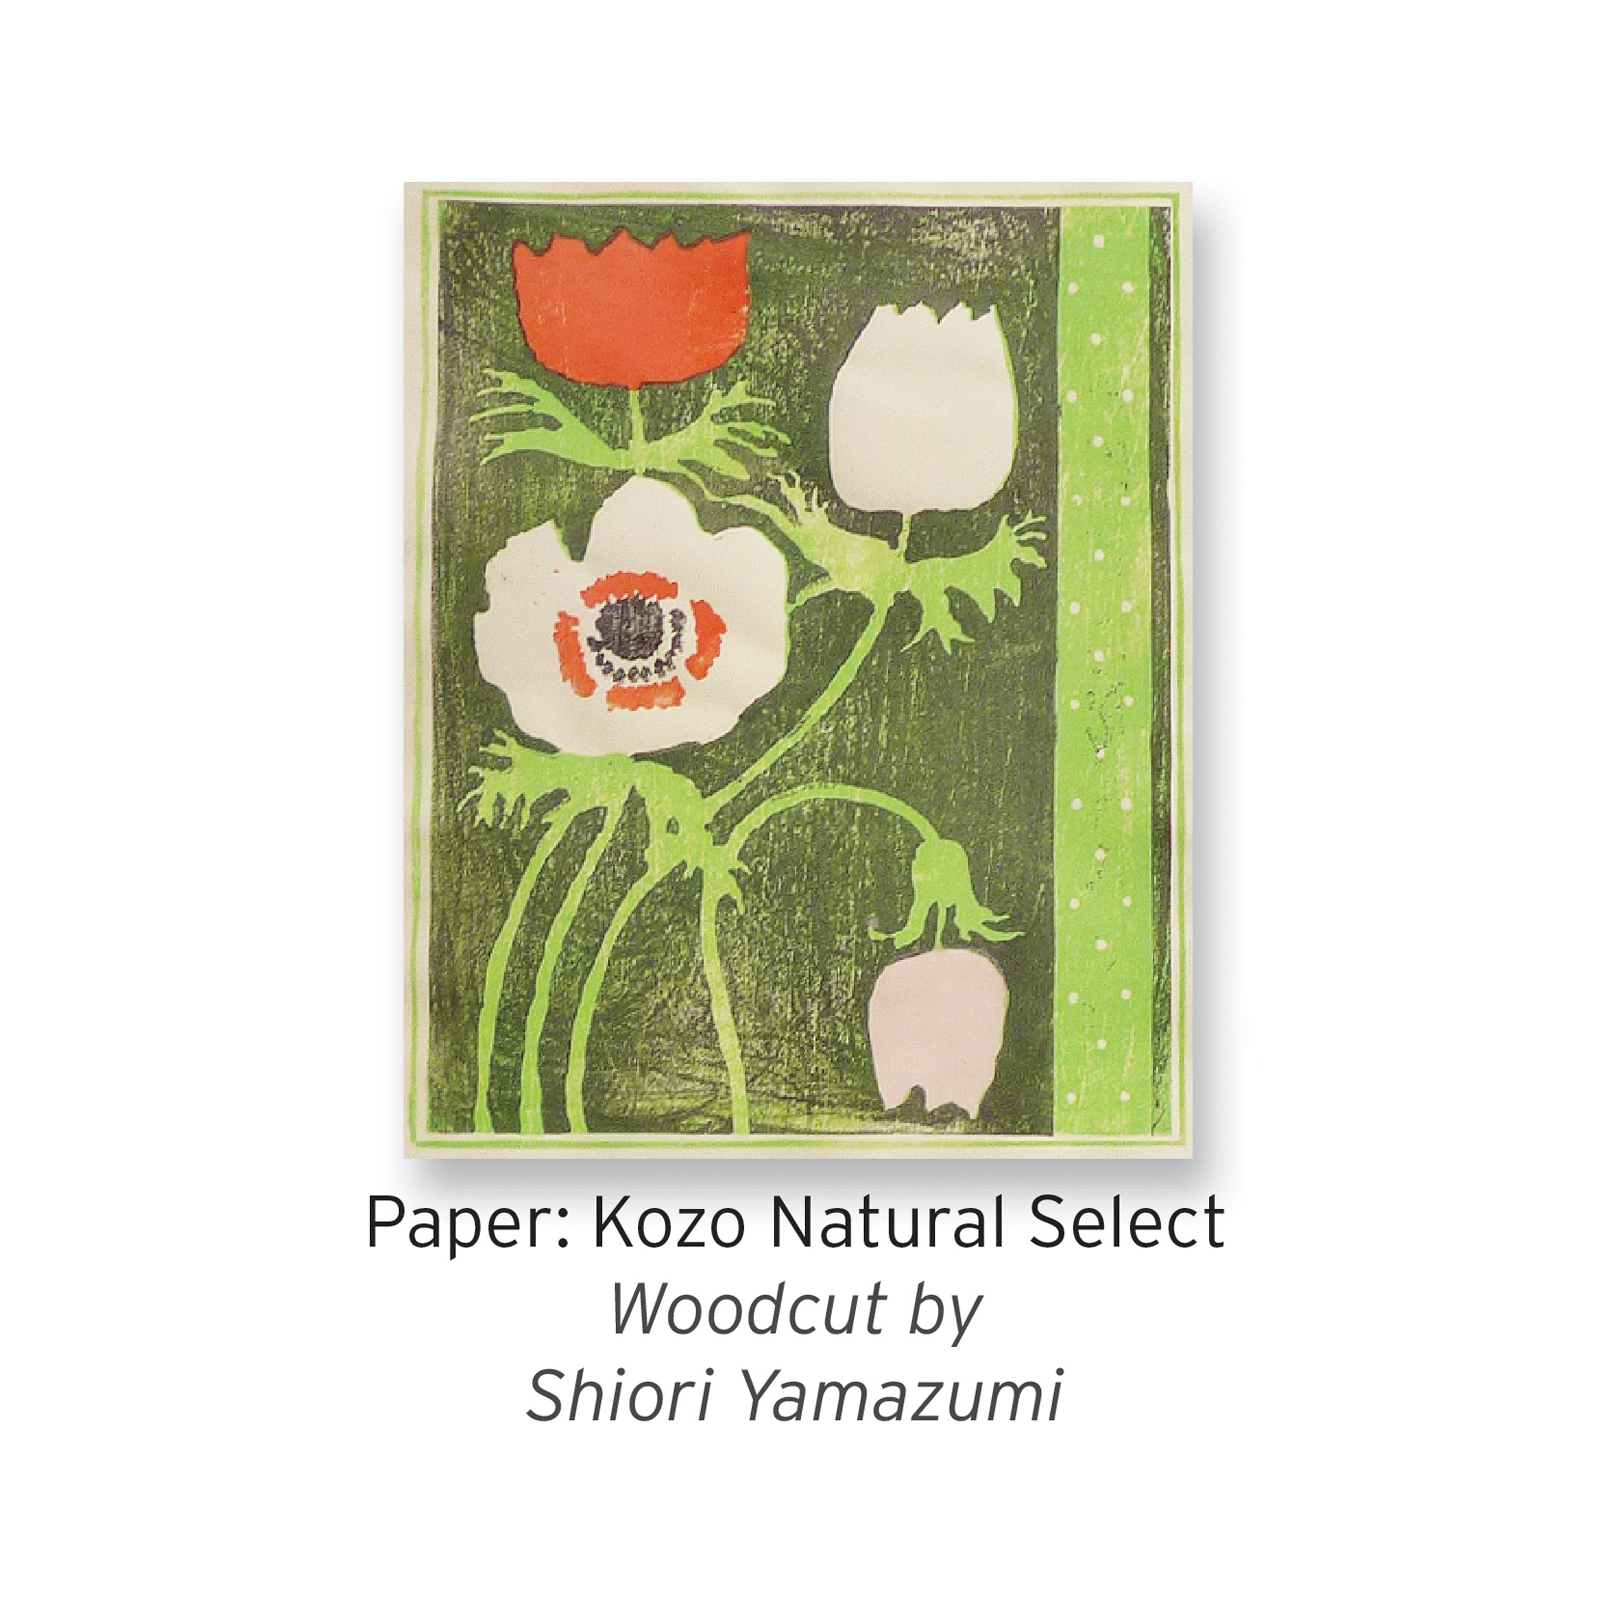 Kozo Natural Select